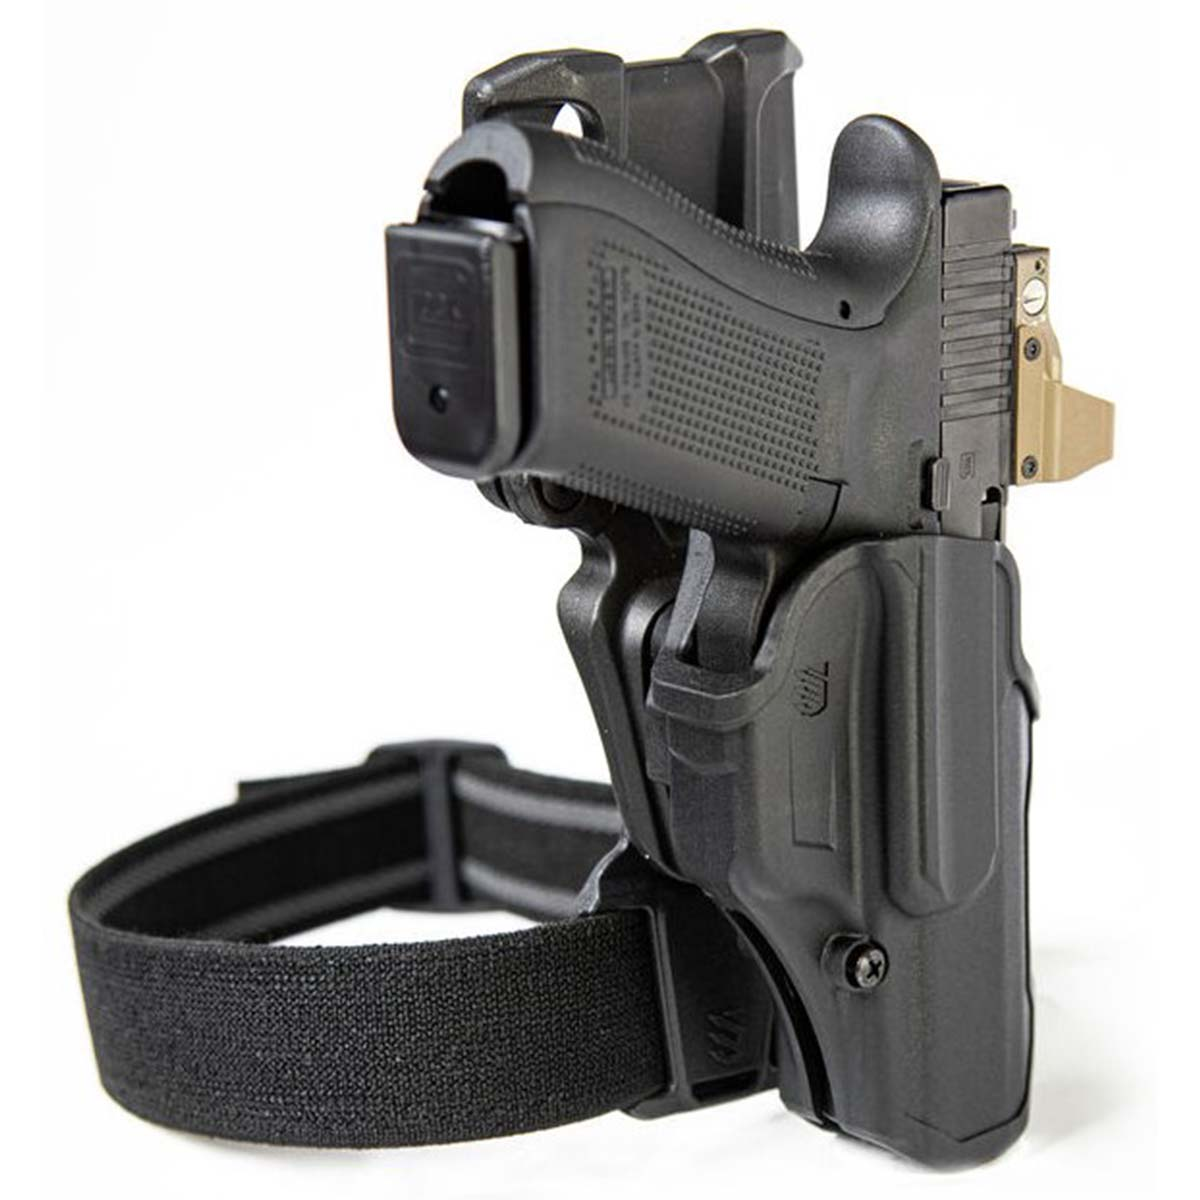 Blackhawk TSeries L2C Holster_1.jpg